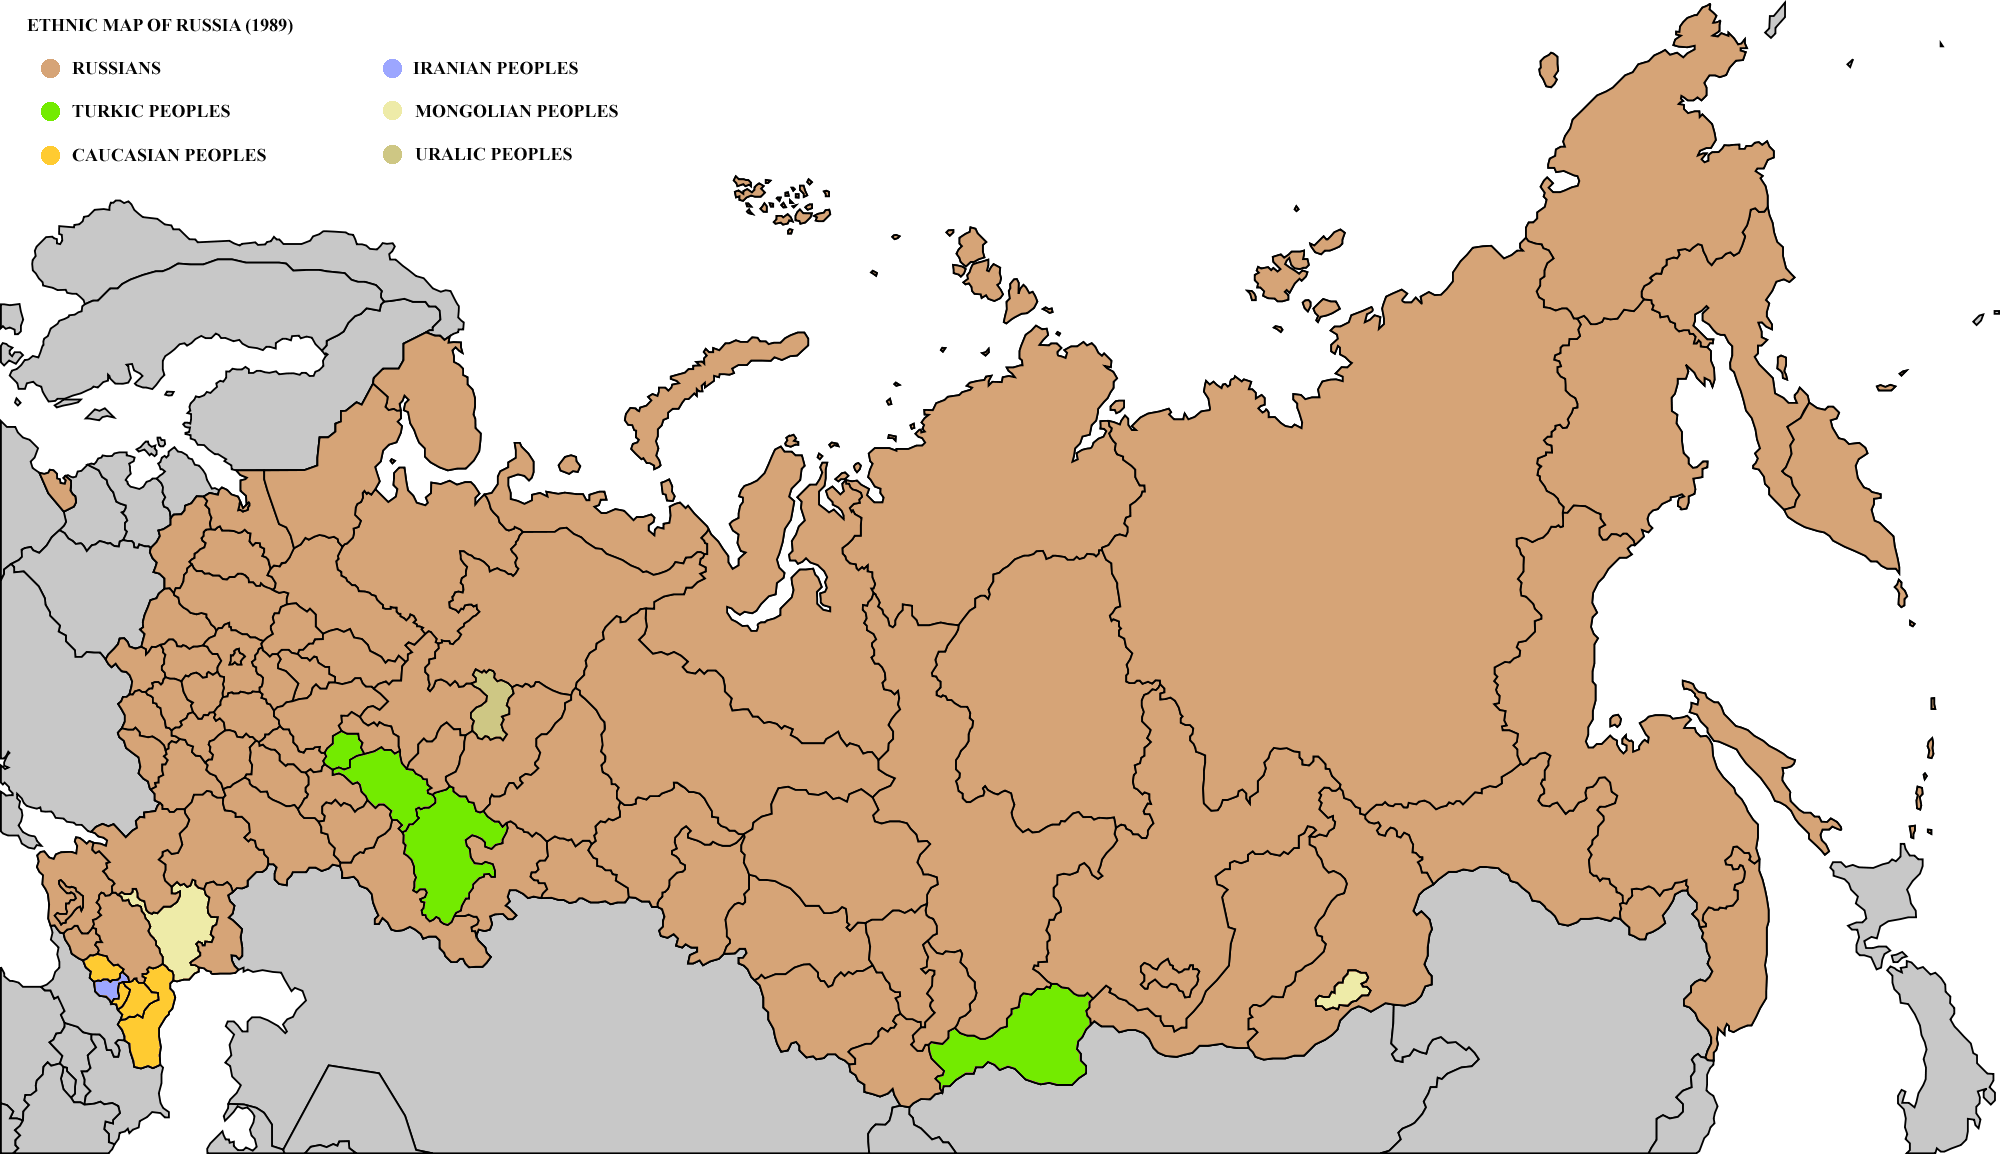 File ethnic map of russia 1989